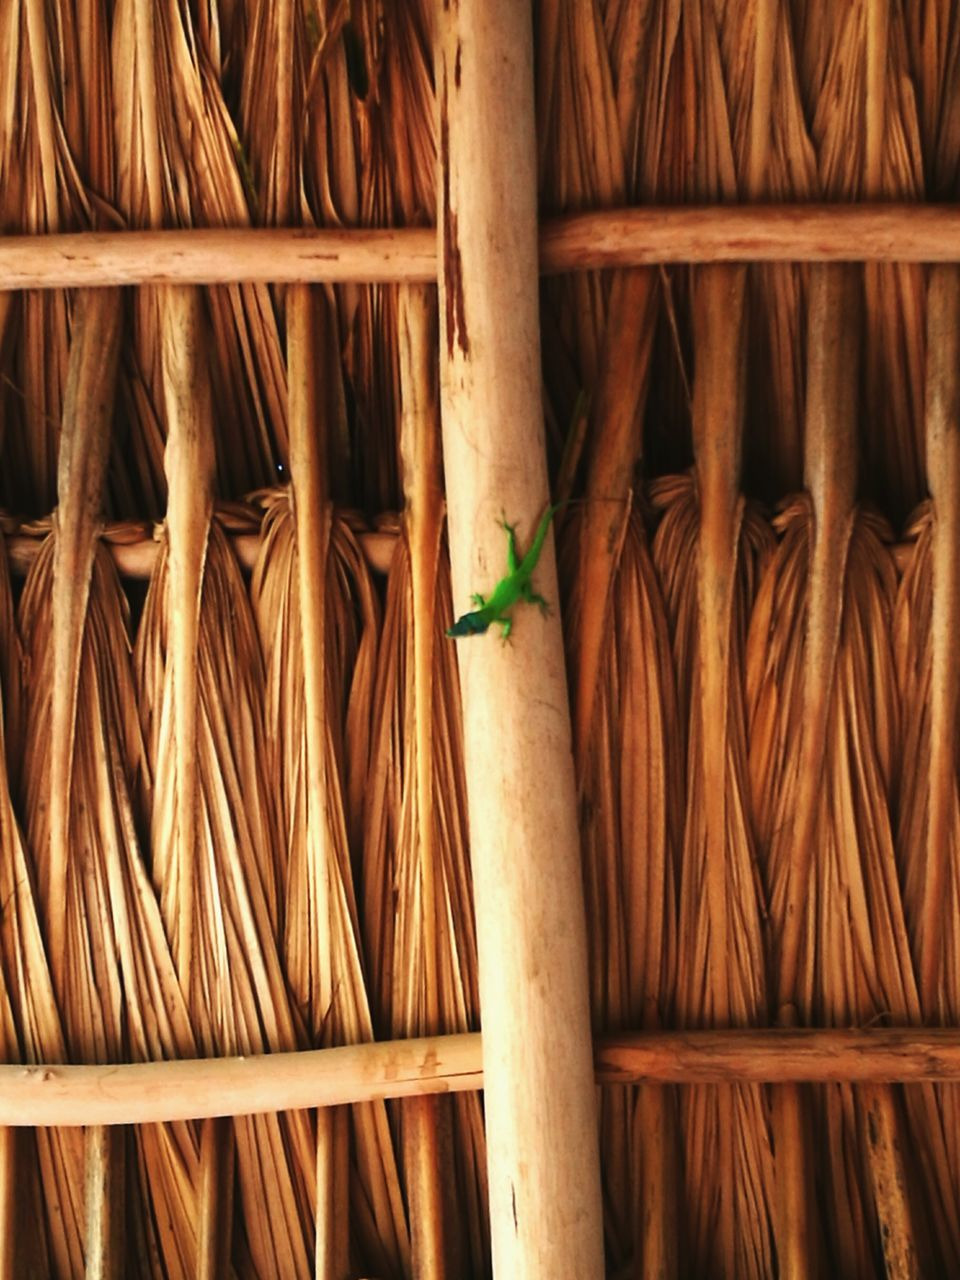 bamboo, bamboo - plant, growth, bamboo - material, no people, bamboo grove, plant, indoors, nature, leaf, day, close-up, beauty in nature, animal themes, freshness